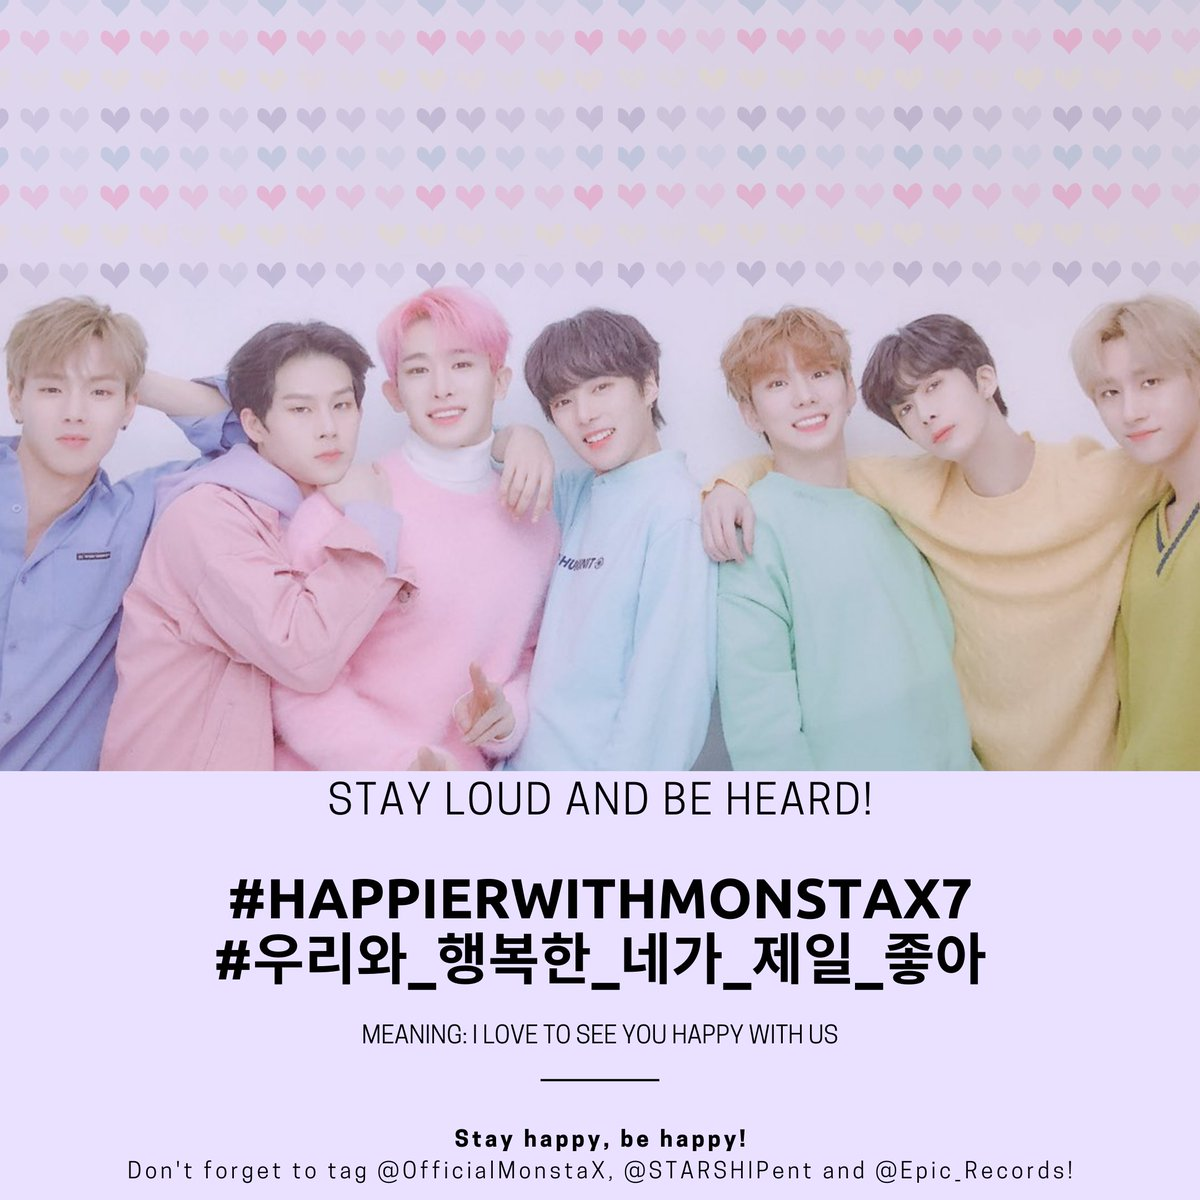 ♥️NEW HASHTAG ALERT♥️ 👉NEW HASHTAG ALERT👈  REPLY (7) TIMES  #HappierWithMonstaX7 #우리와_행복한_네가_제일_좋아 - I love to see you happy with us  @OfficialMonstaX @STARSHIPent @Epic_Records @eshygazit